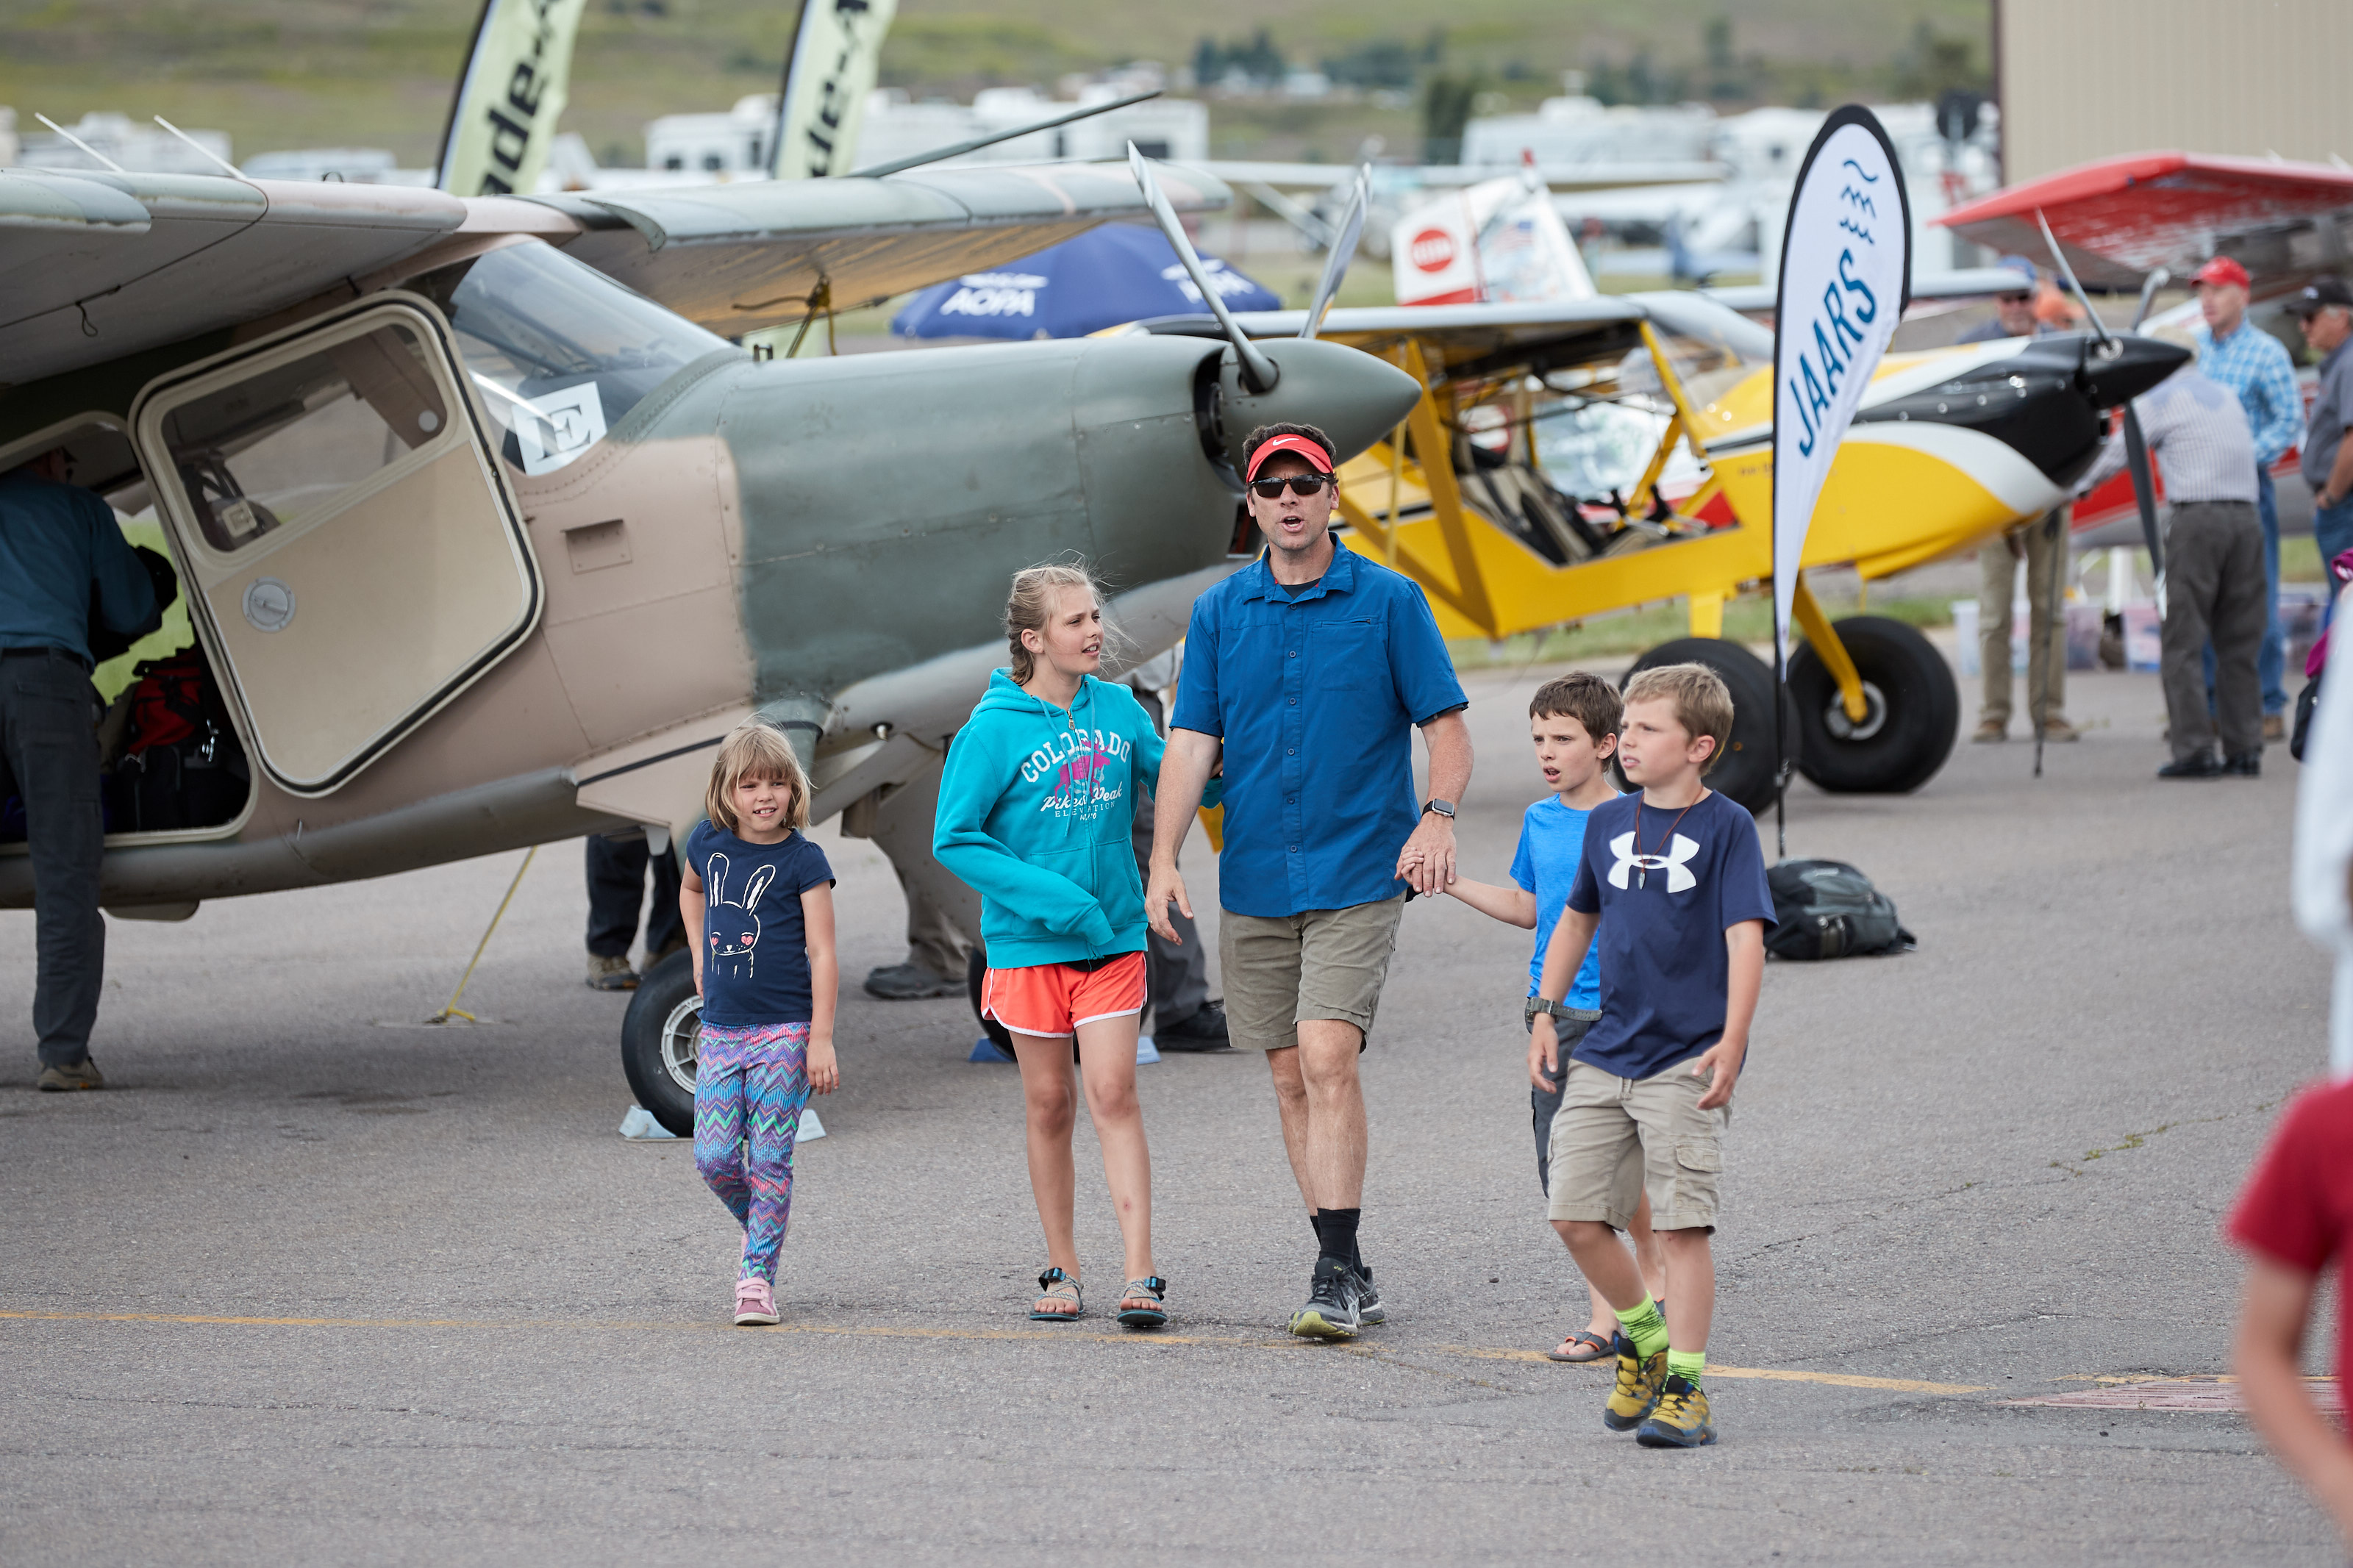 A family walks through the static display area during the AOPA Fly-In at Missoula International Airport, in Missoula, Montana. Photo by Mike Fizer.